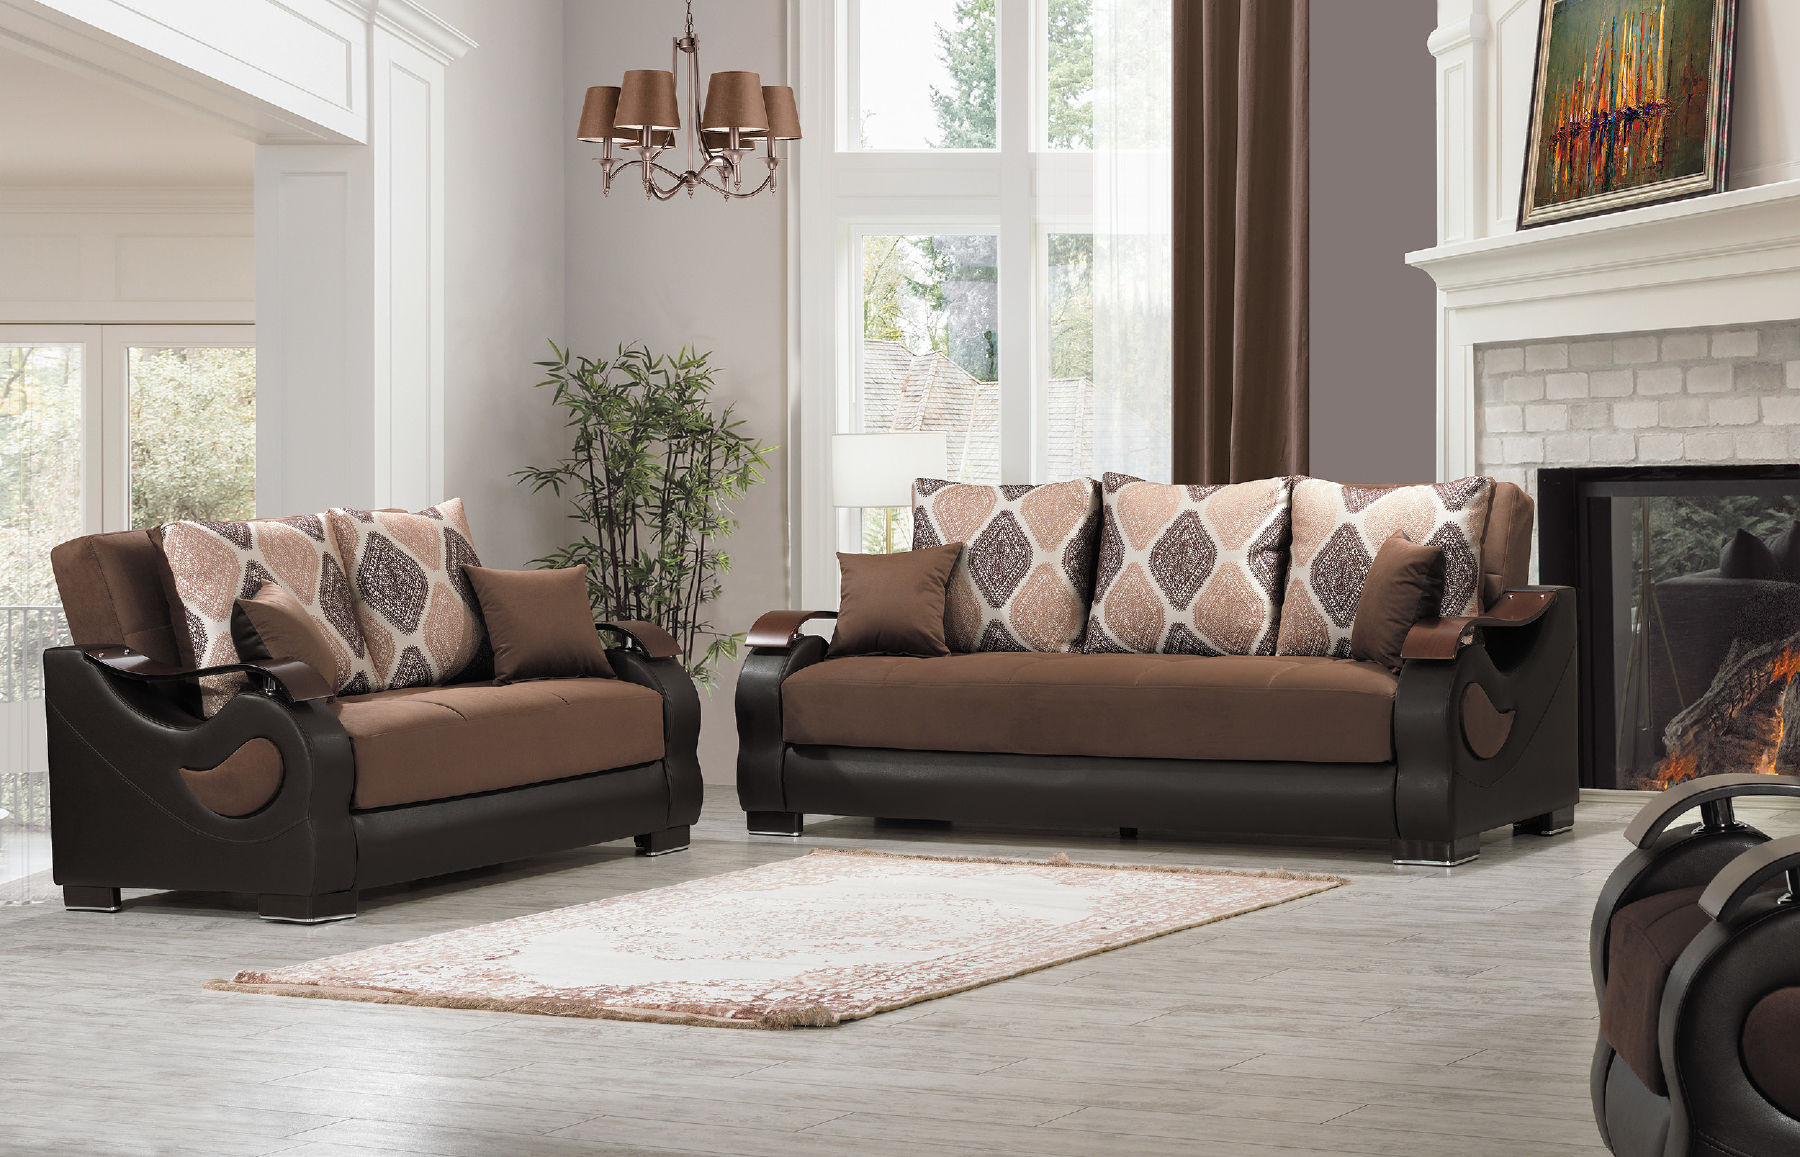 Fabulous Metro Plex Brown Sofa Gmtry Best Dining Table And Chair Ideas Images Gmtryco